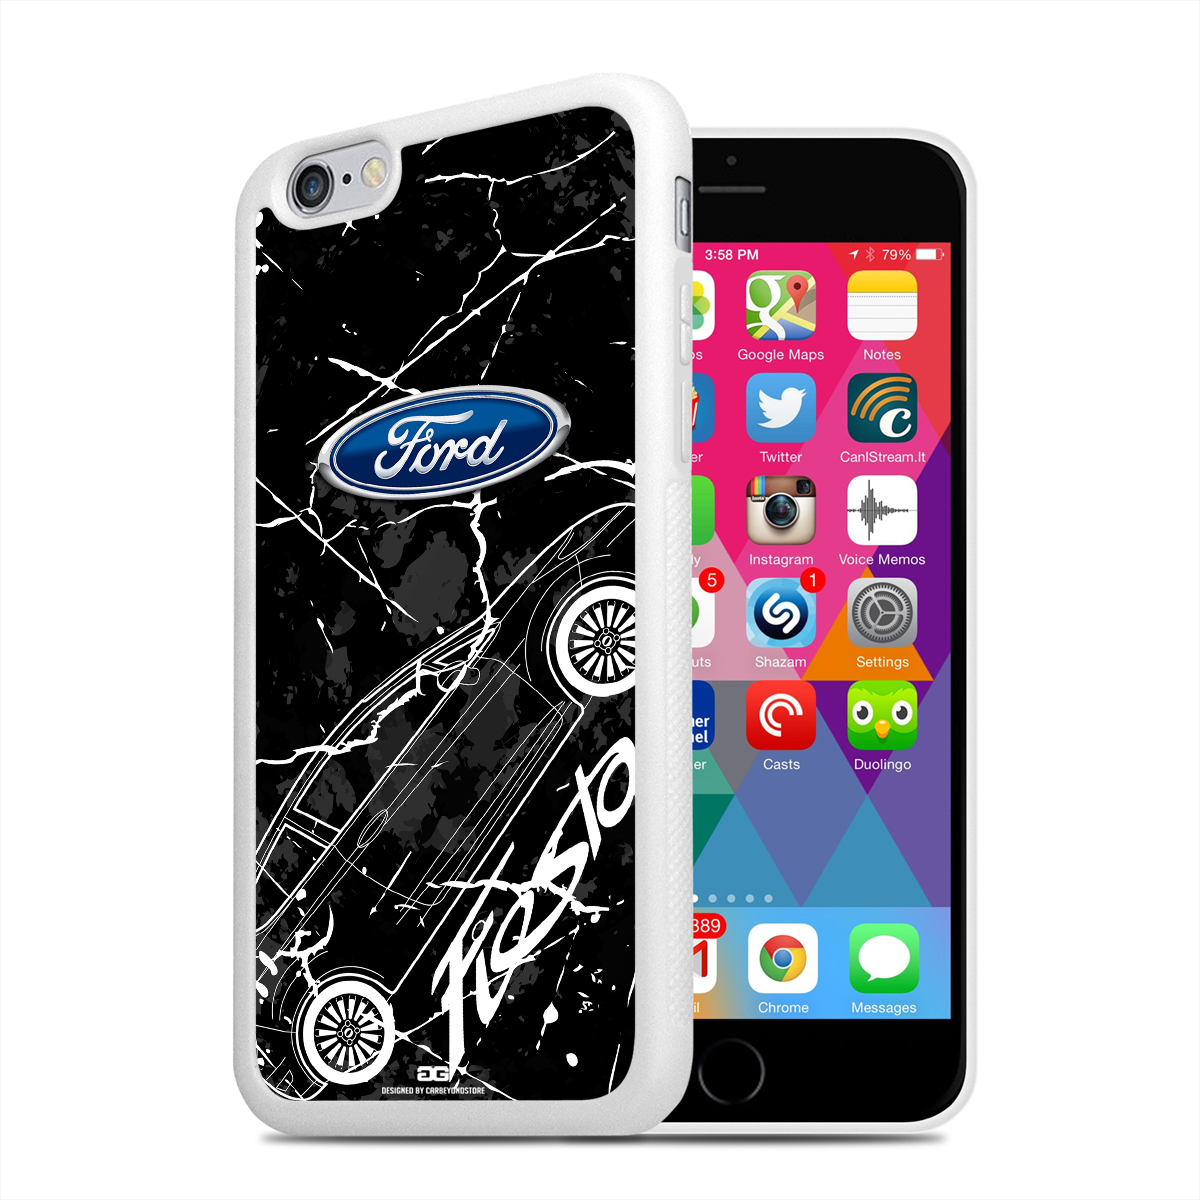 Ford Fiesta Weathered Graphics iPhone 6 White TPU Rubber Cell Phone Case